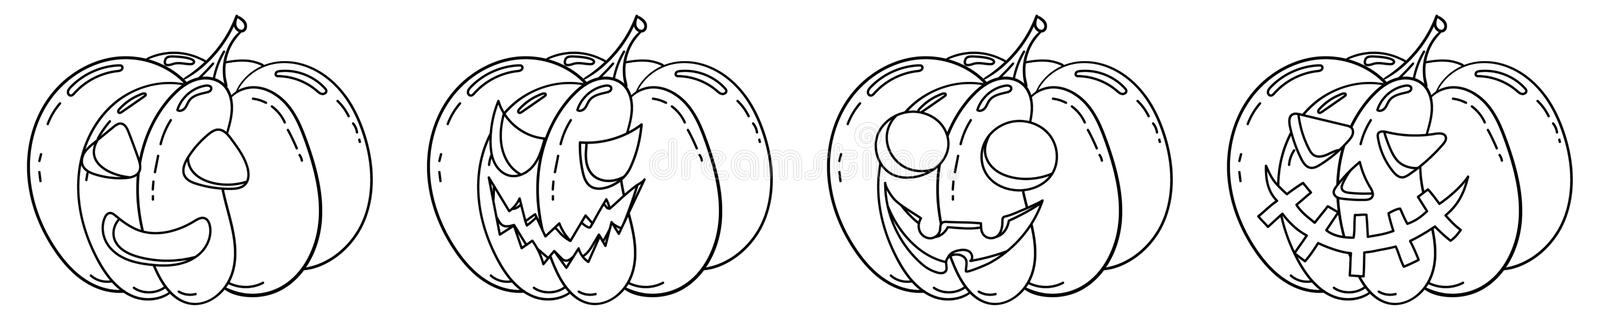 Coloring Page With Halloween Pumpkin Set Stock Vector Illustration Of Drawing Agricultural 161464601